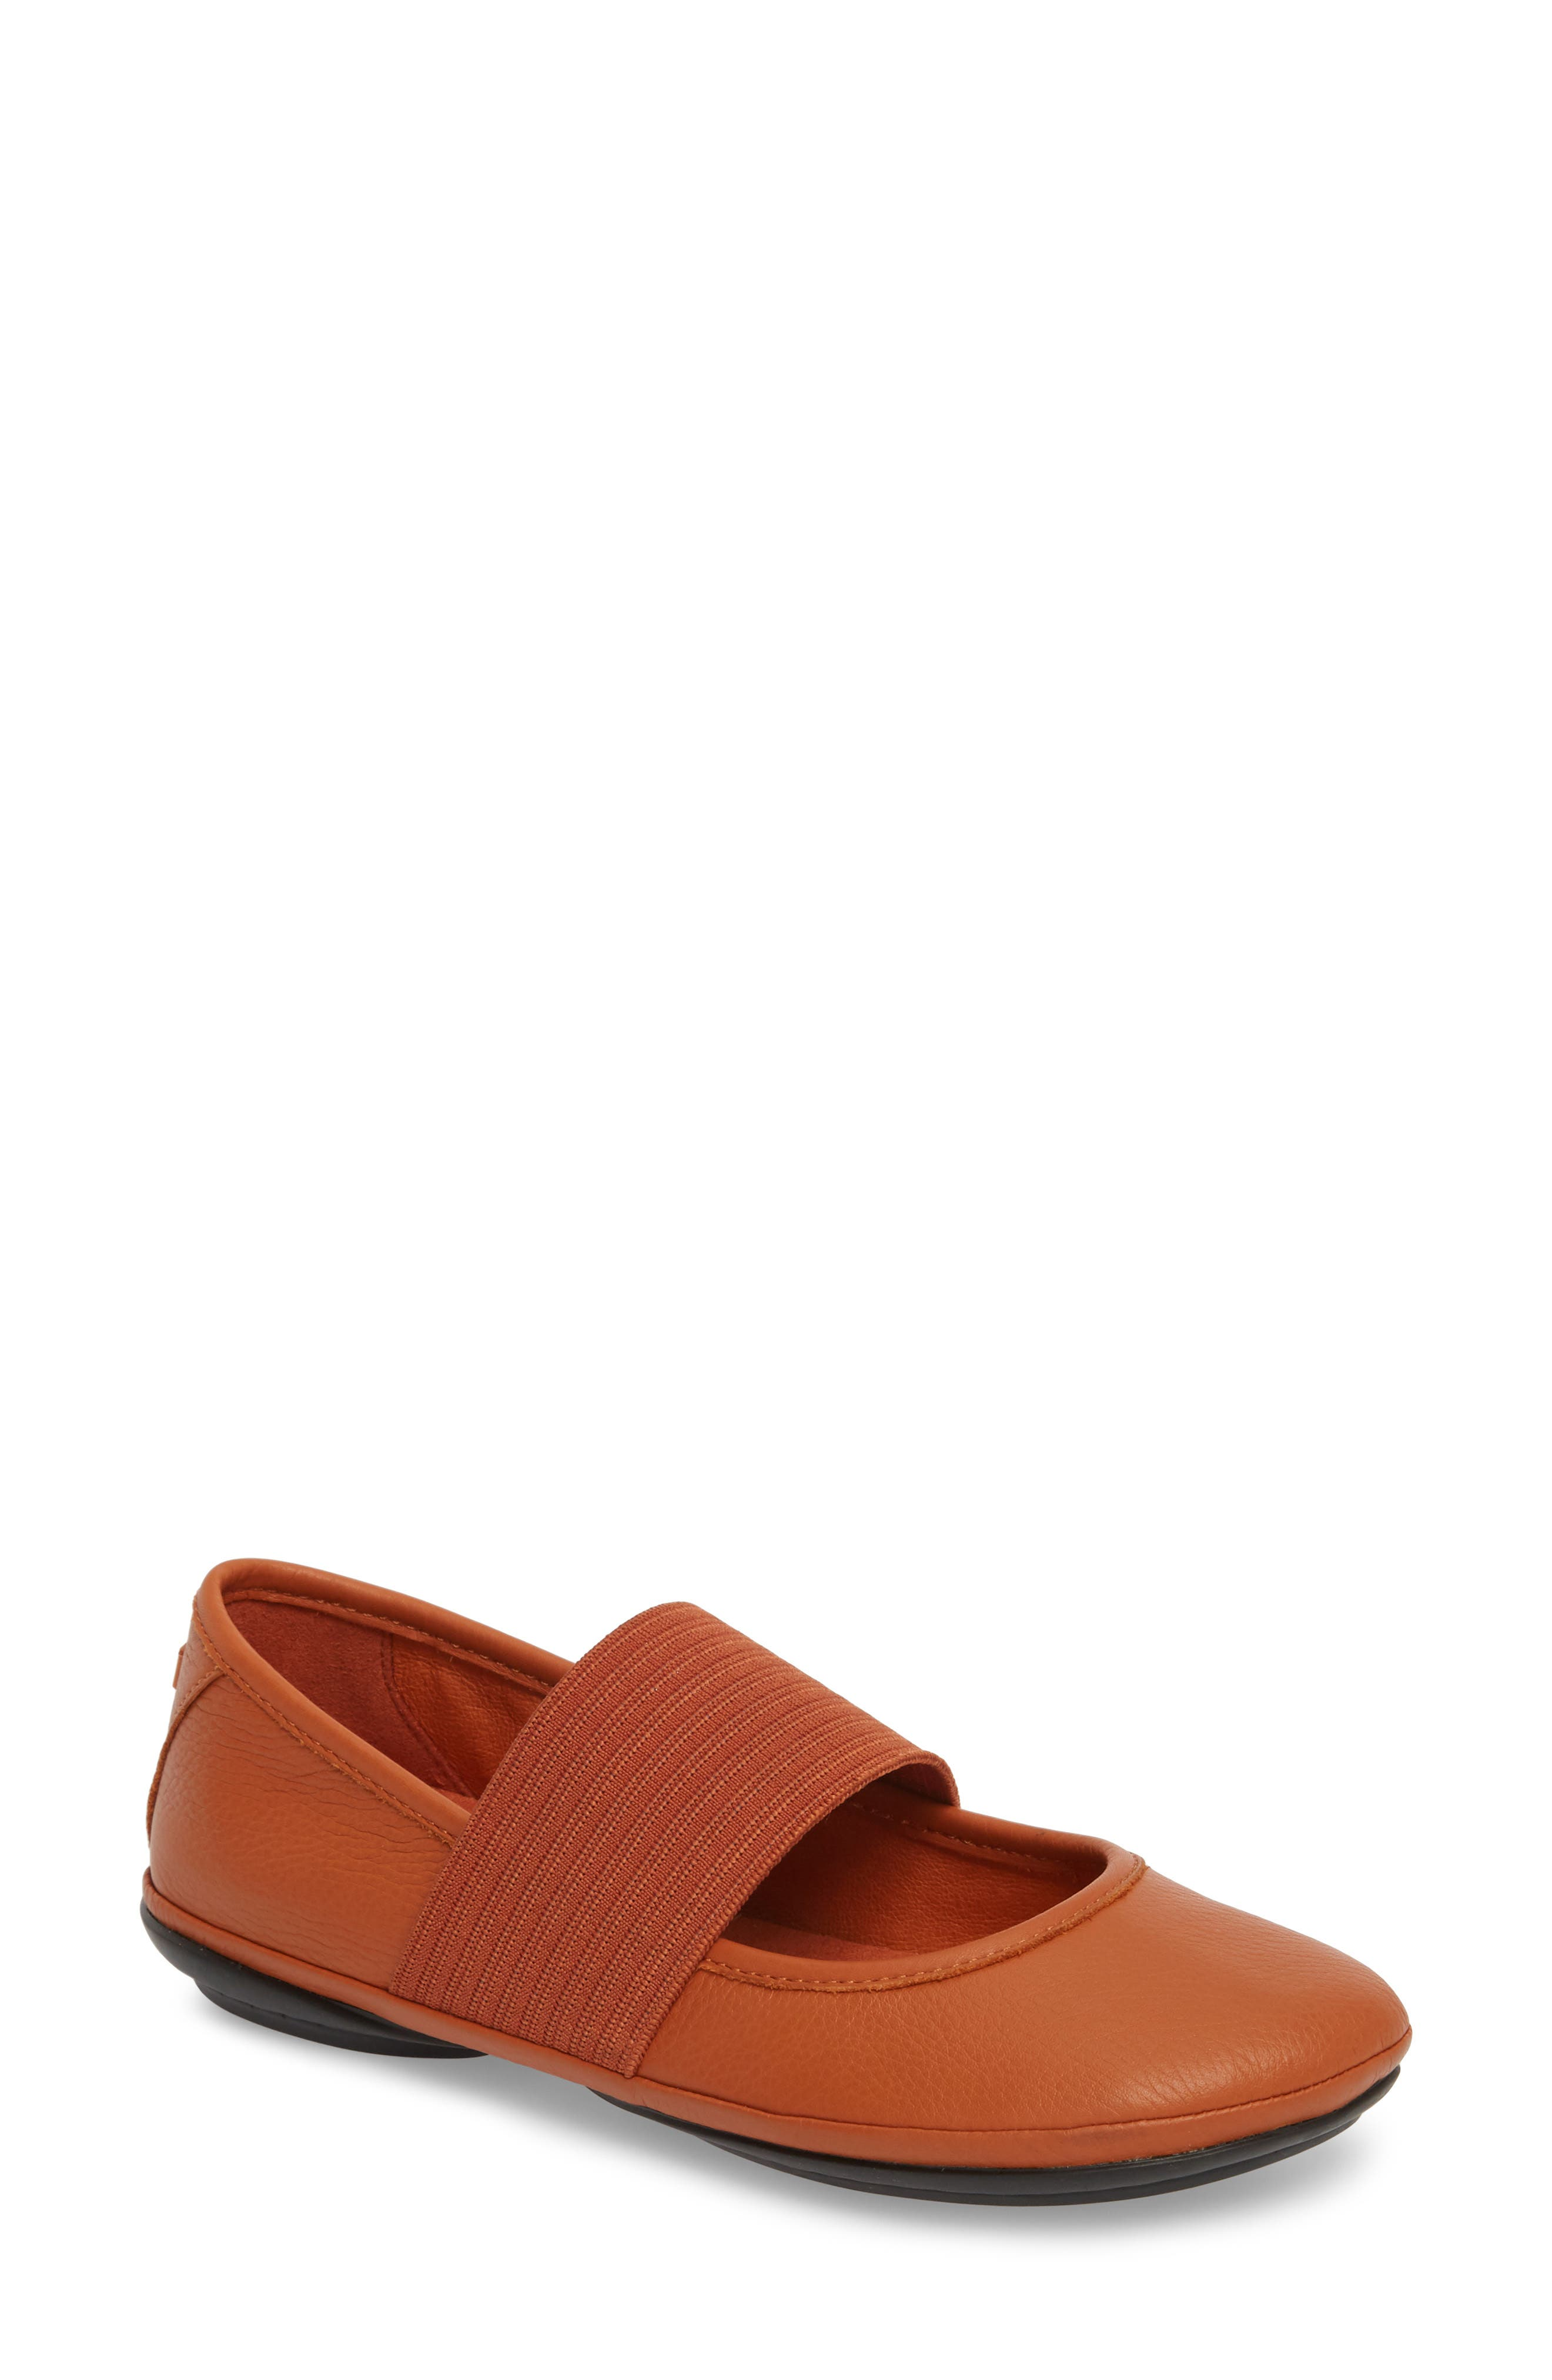 Right Nina Ballet Flat,                             Main thumbnail 1, color,                             Rust/Copper Leather